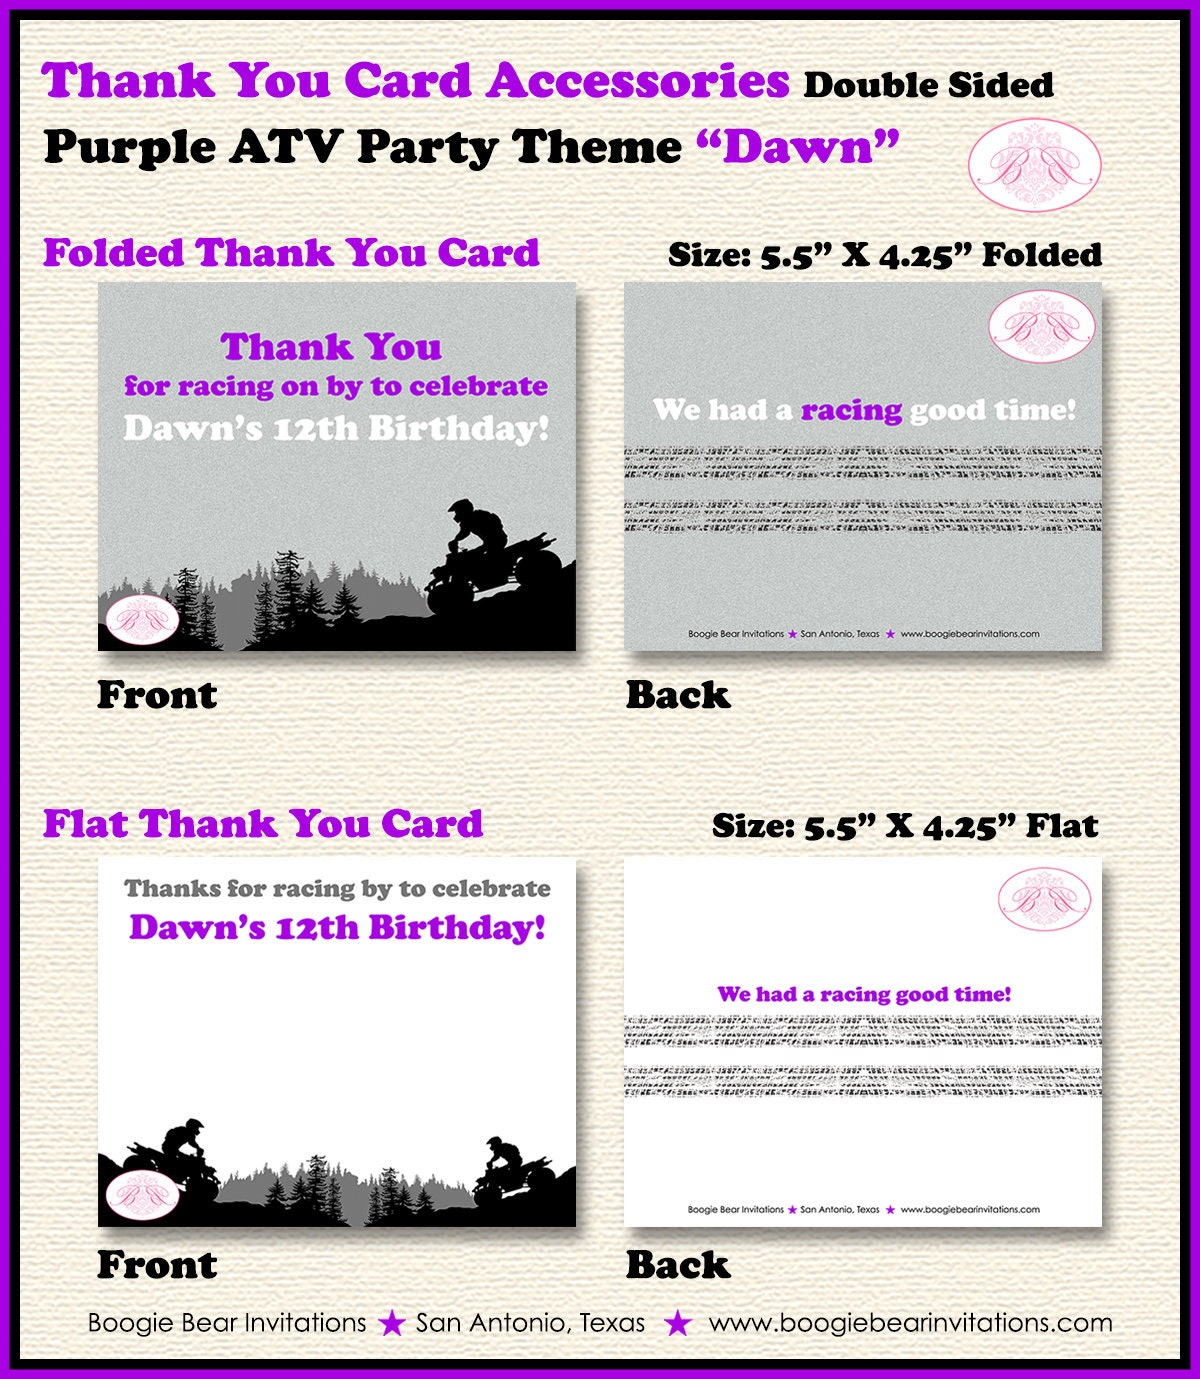 Purple ATV Birthday Party Thank You Card Girl Grey Black 1st 2nd 3rd 4th 5th 6th 7th 8th 9th 12th Boogie Bear Invitations Dawn Theme Printed